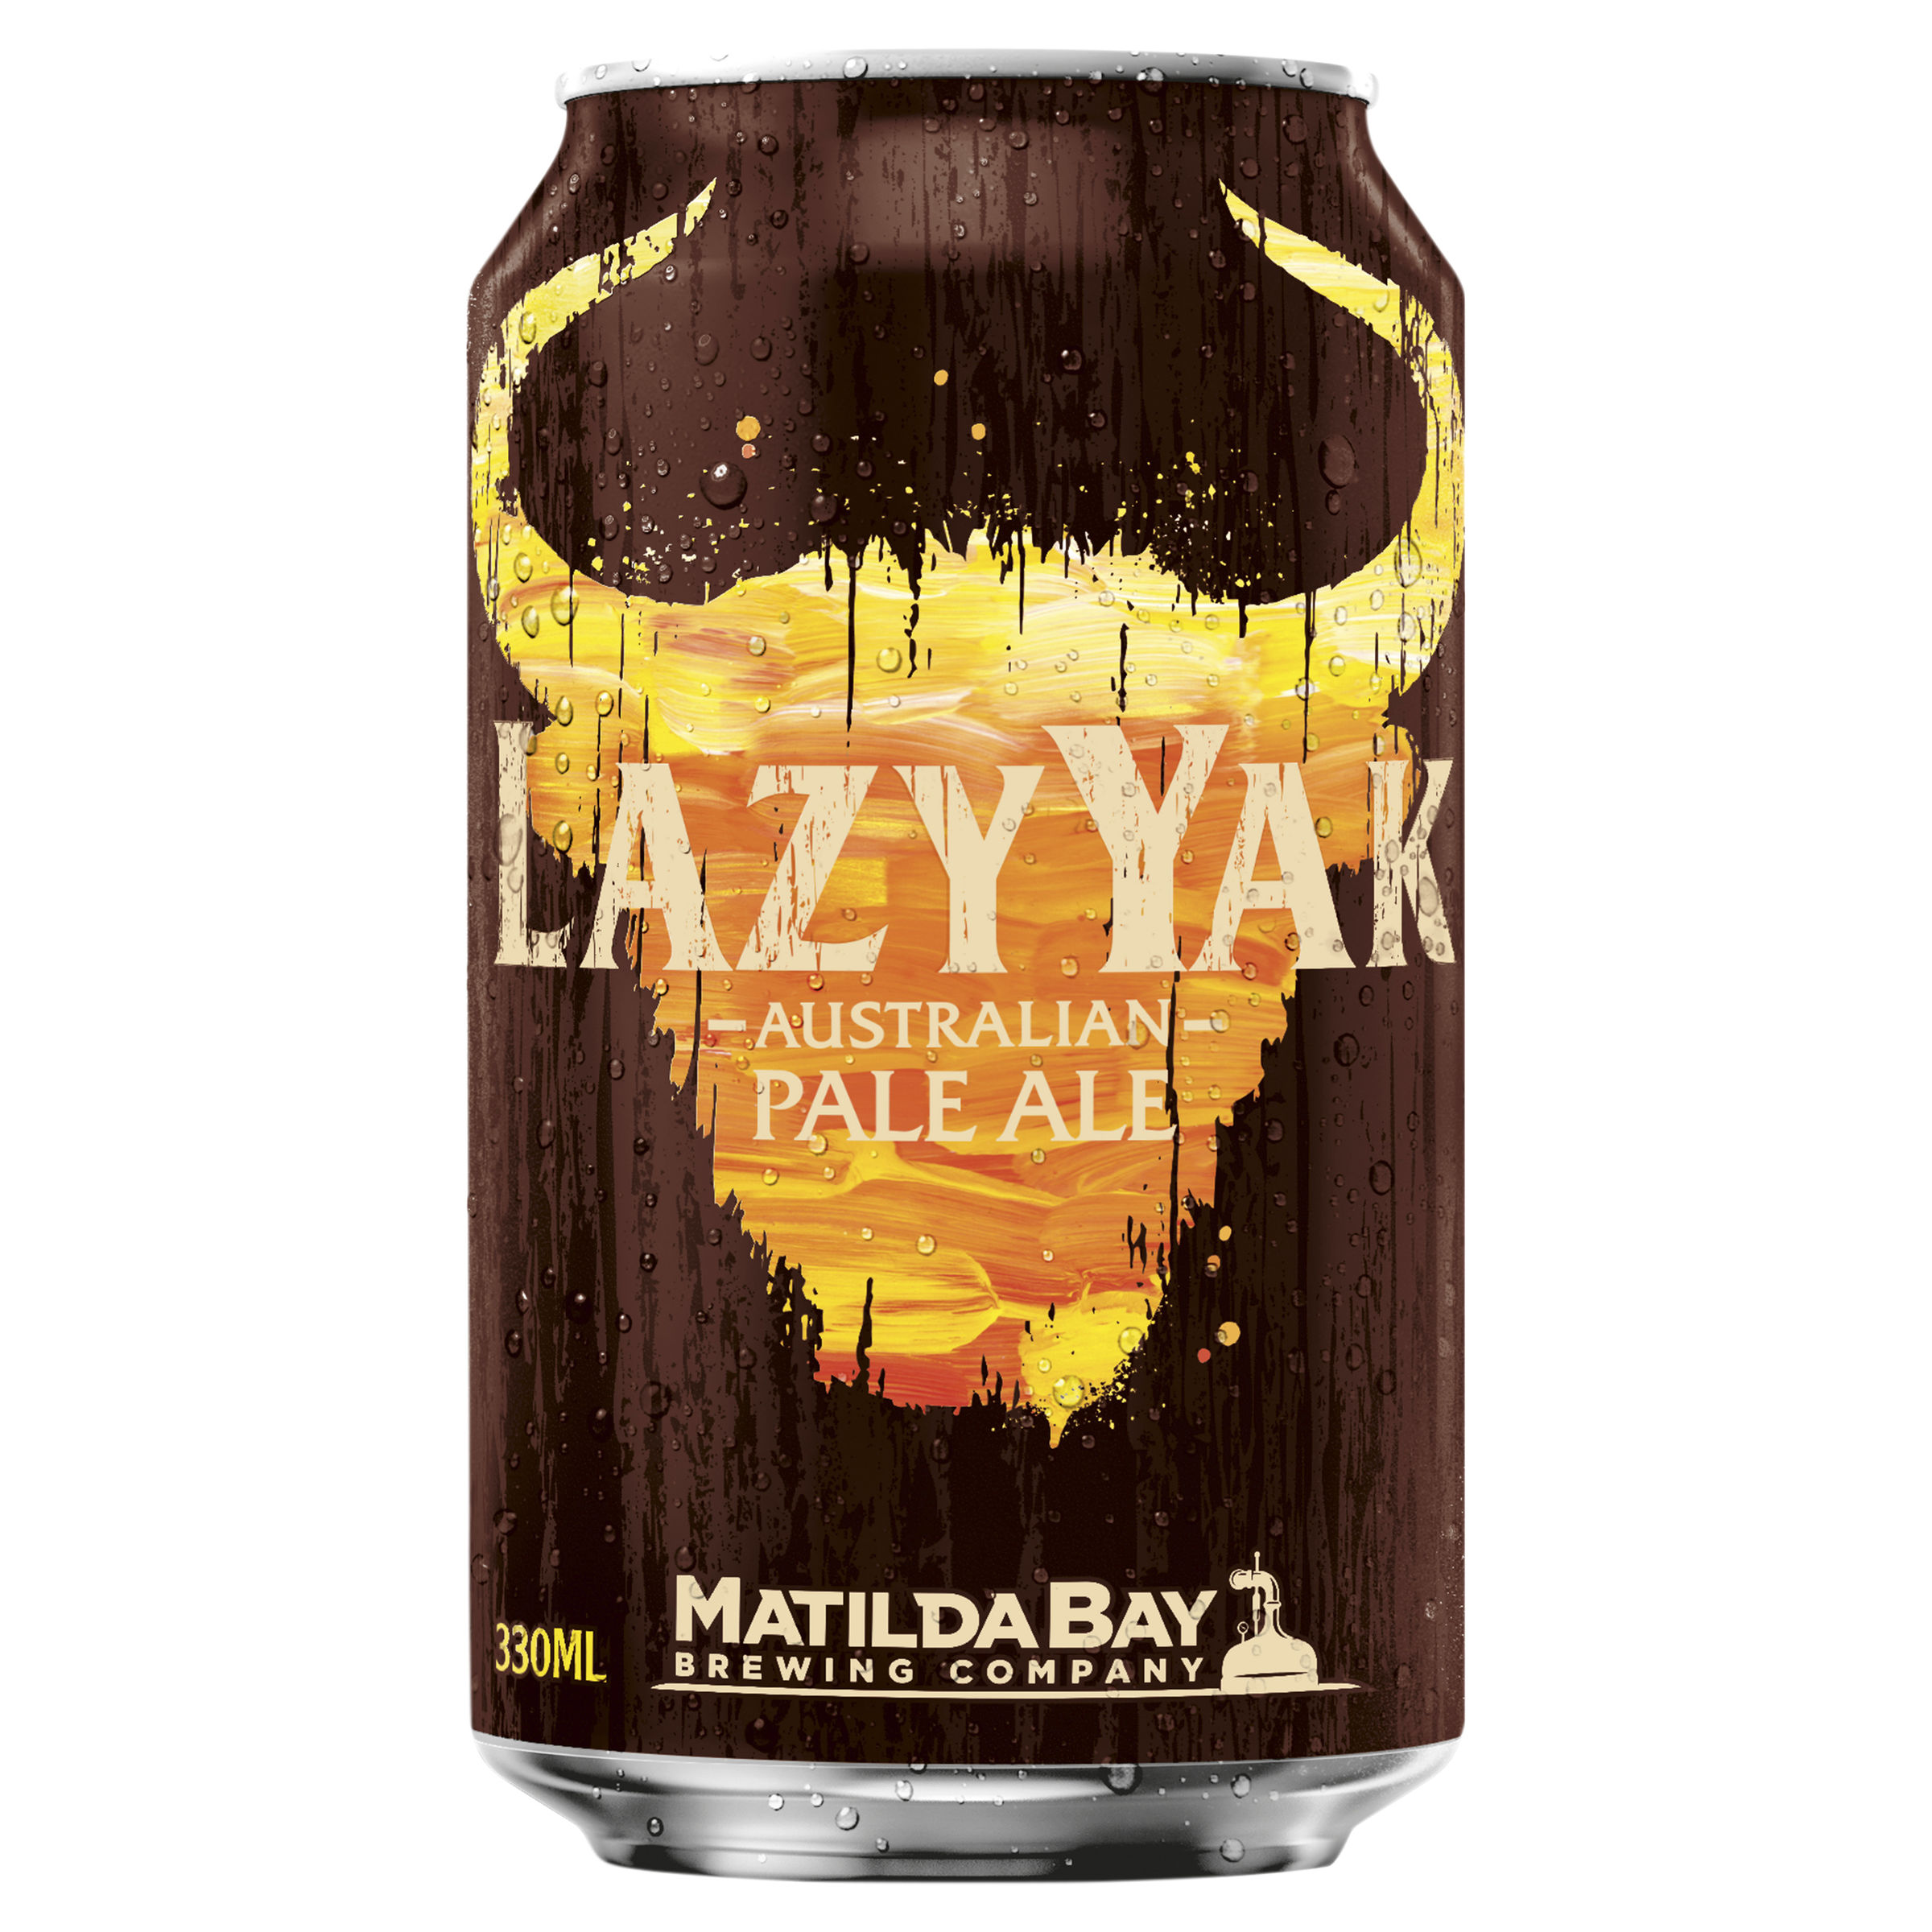 MATILDA BAY LAZY YAK PALE ALE